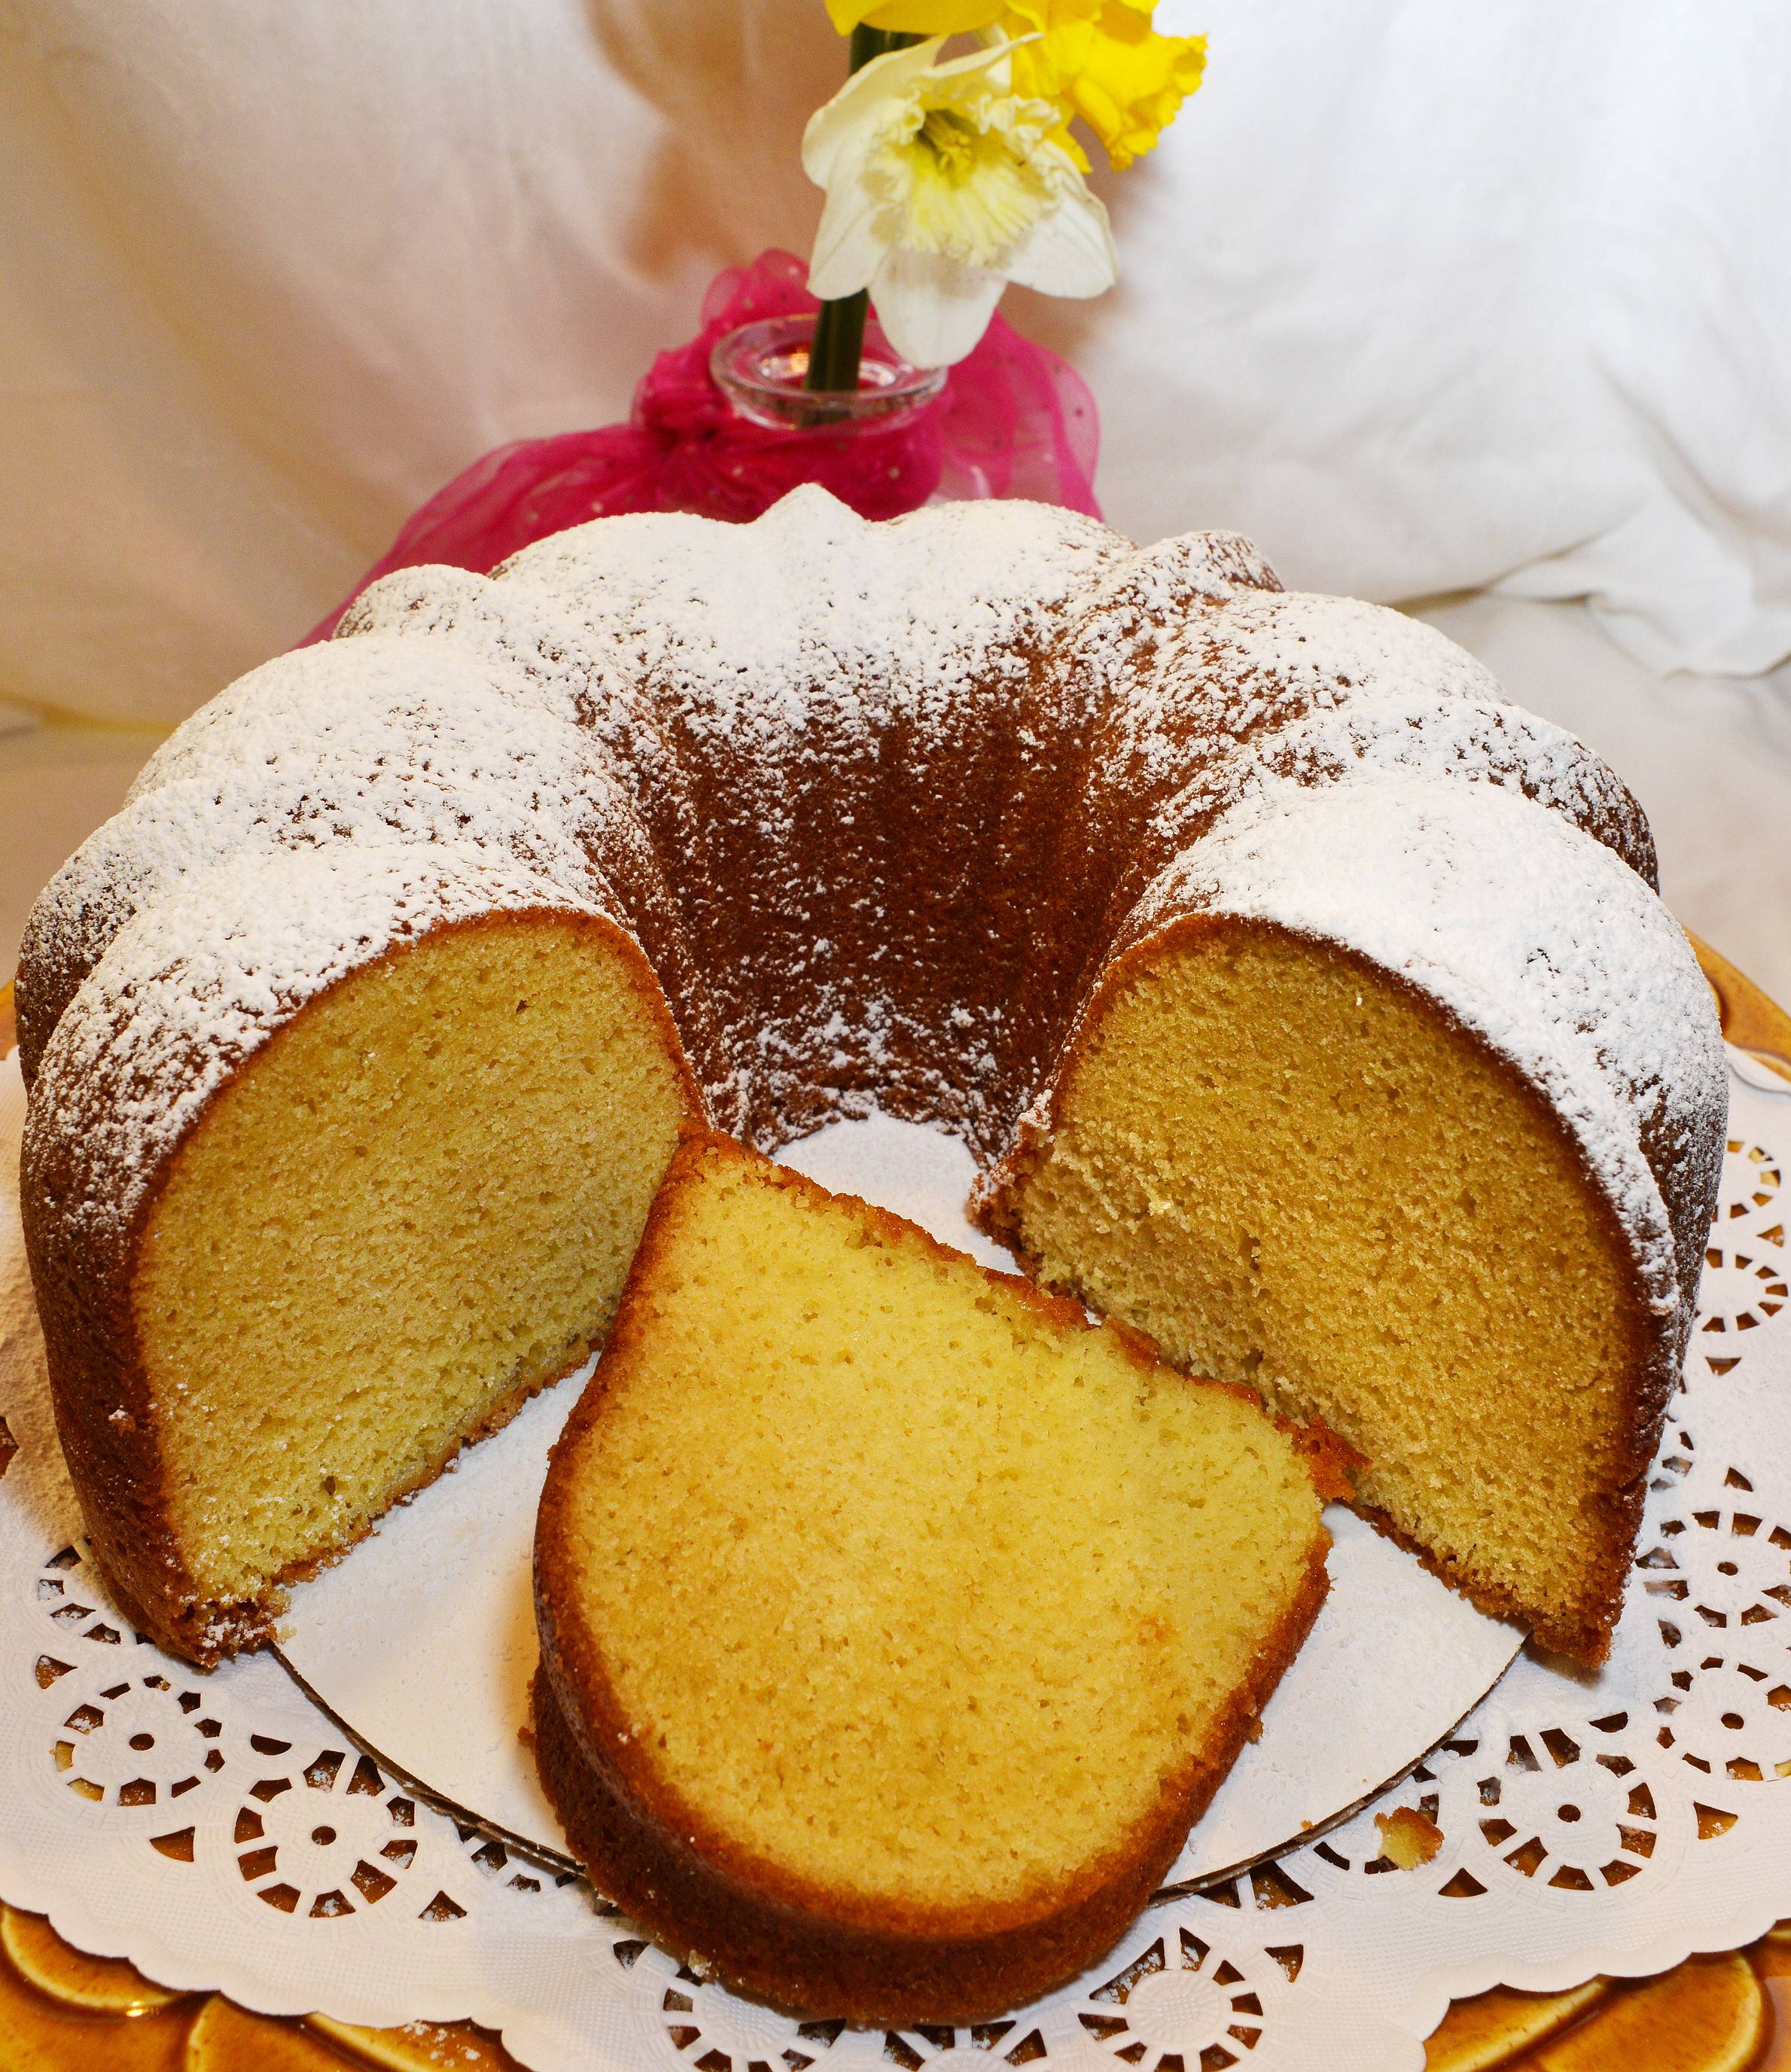 Baking secrets: Olive oil, orange juice help lighten up poundcake